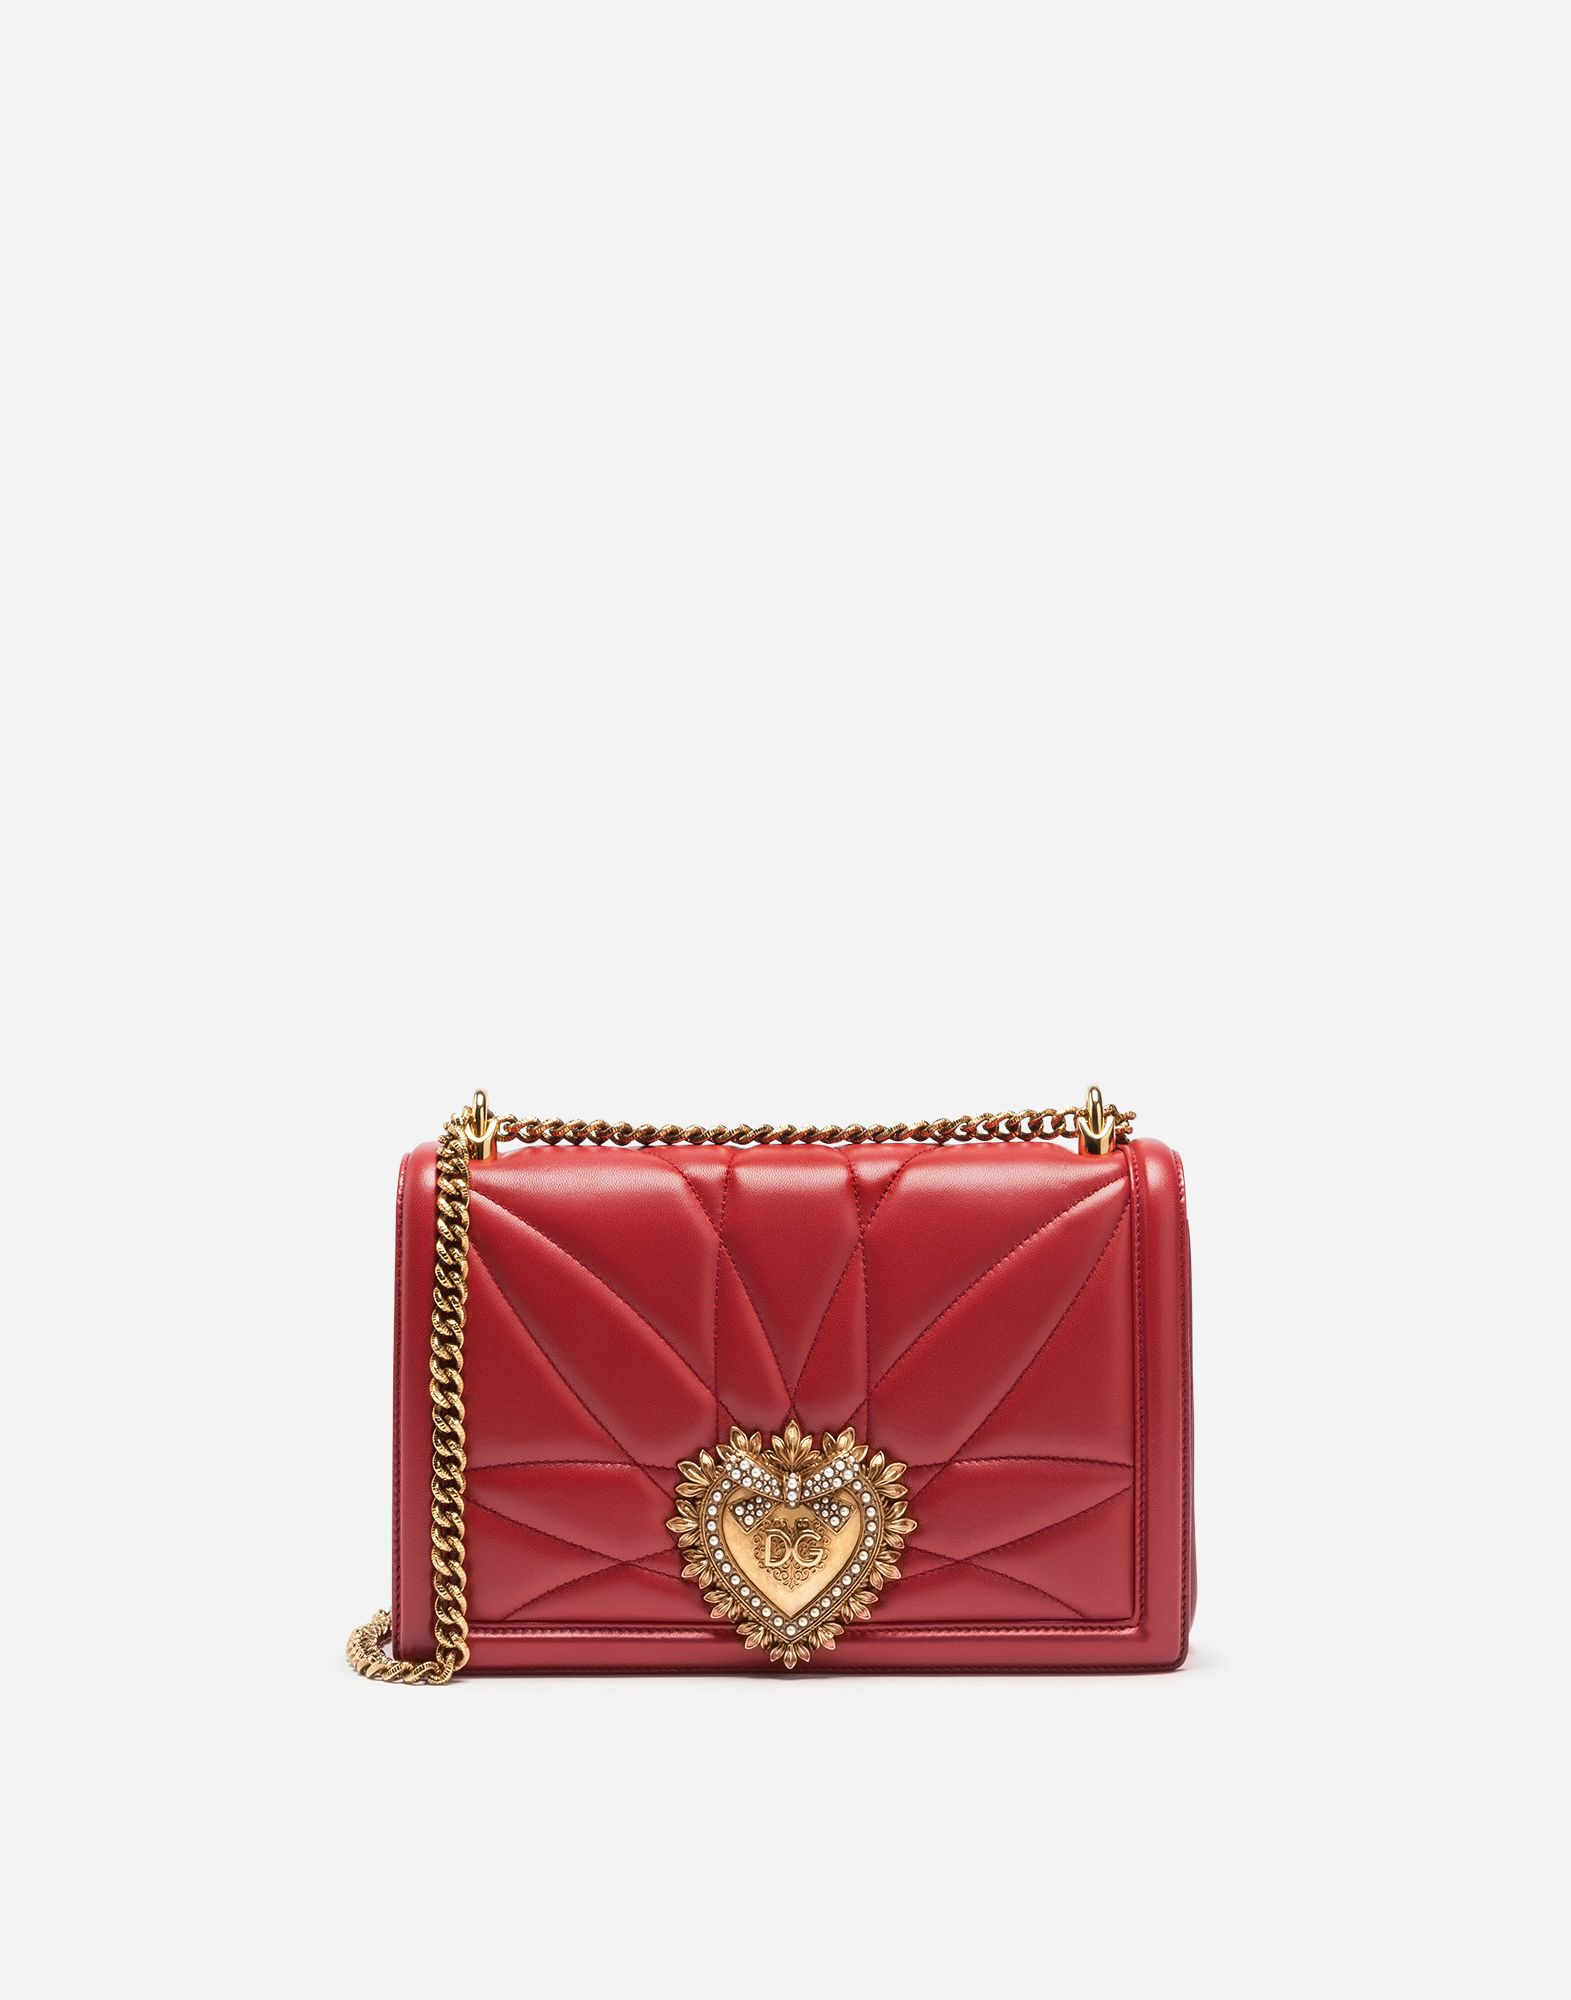 0396517e1ca Straight off the runway, the Devotion Bag is the new object of desire. Born  from the love of craftsmanship and attention to detail, the bag is  embellished ...